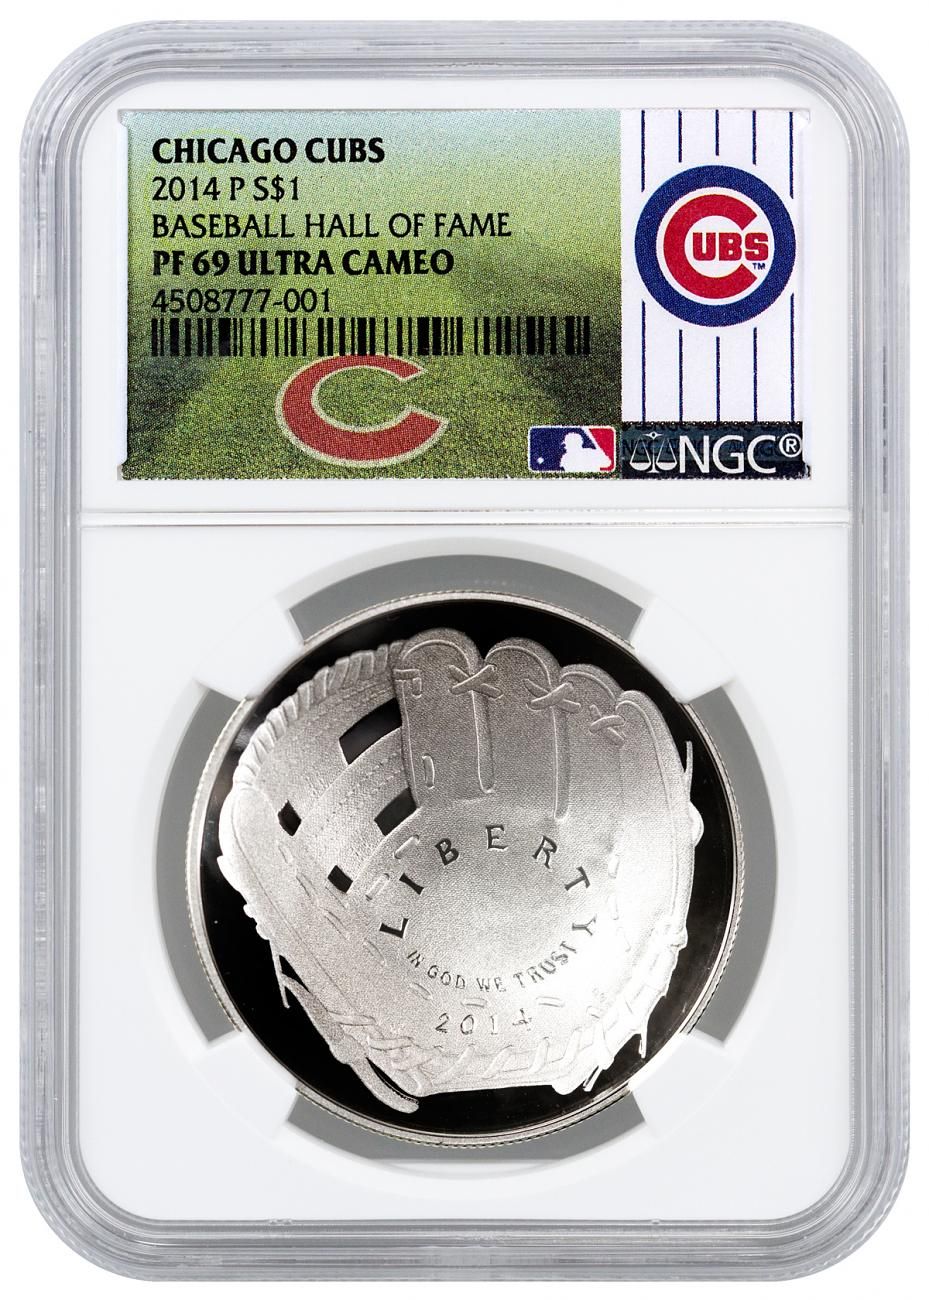 2014-P $1 Proof Domed Silver National Baseball Hall of Fame Commemorative - NGC PF69 UC (Chicago Cubs Label)